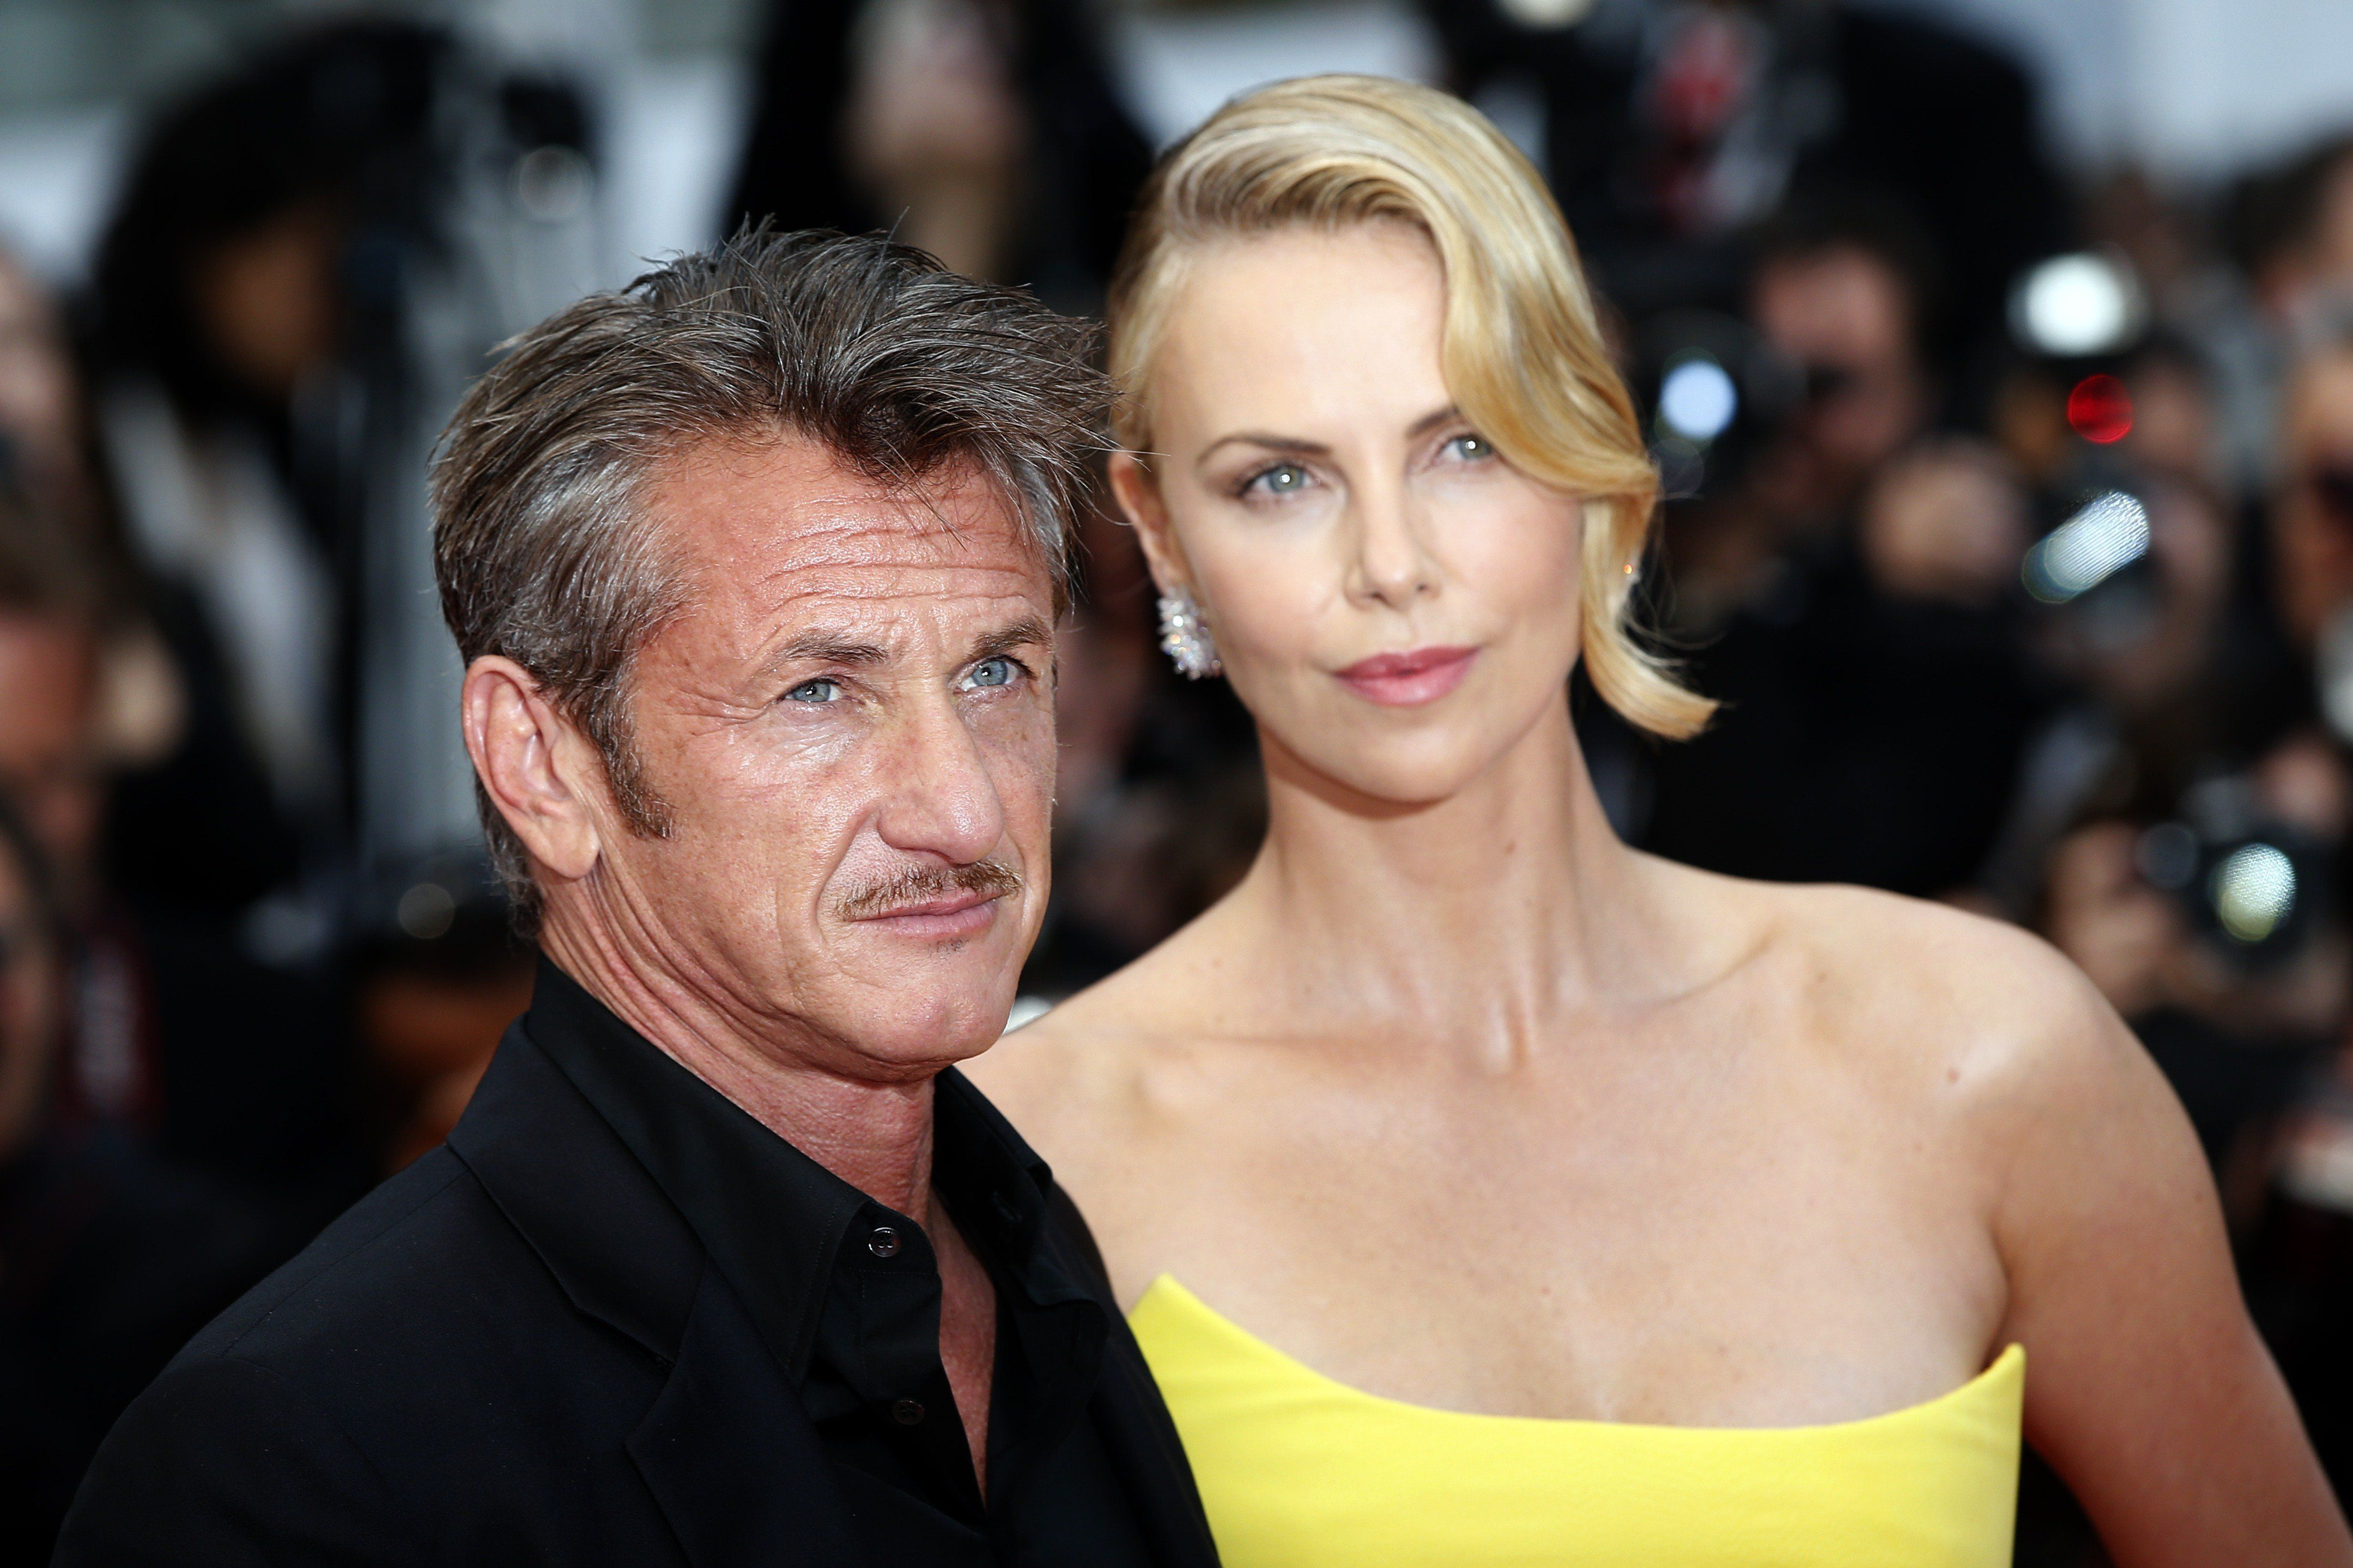 US actor Sean Penn (L) and his partner South African-US actress Charlize Theron pose as they arrive for the screening of the film 'Mad Max : Fury Road' during the 68th Cannes Film Festival in Cannes, southeastern France, on May 14, 2015.   AFP PHOTO / VALERY HACHE        (Photo credit should read VALERY HACHE/AFP/Getty Images)